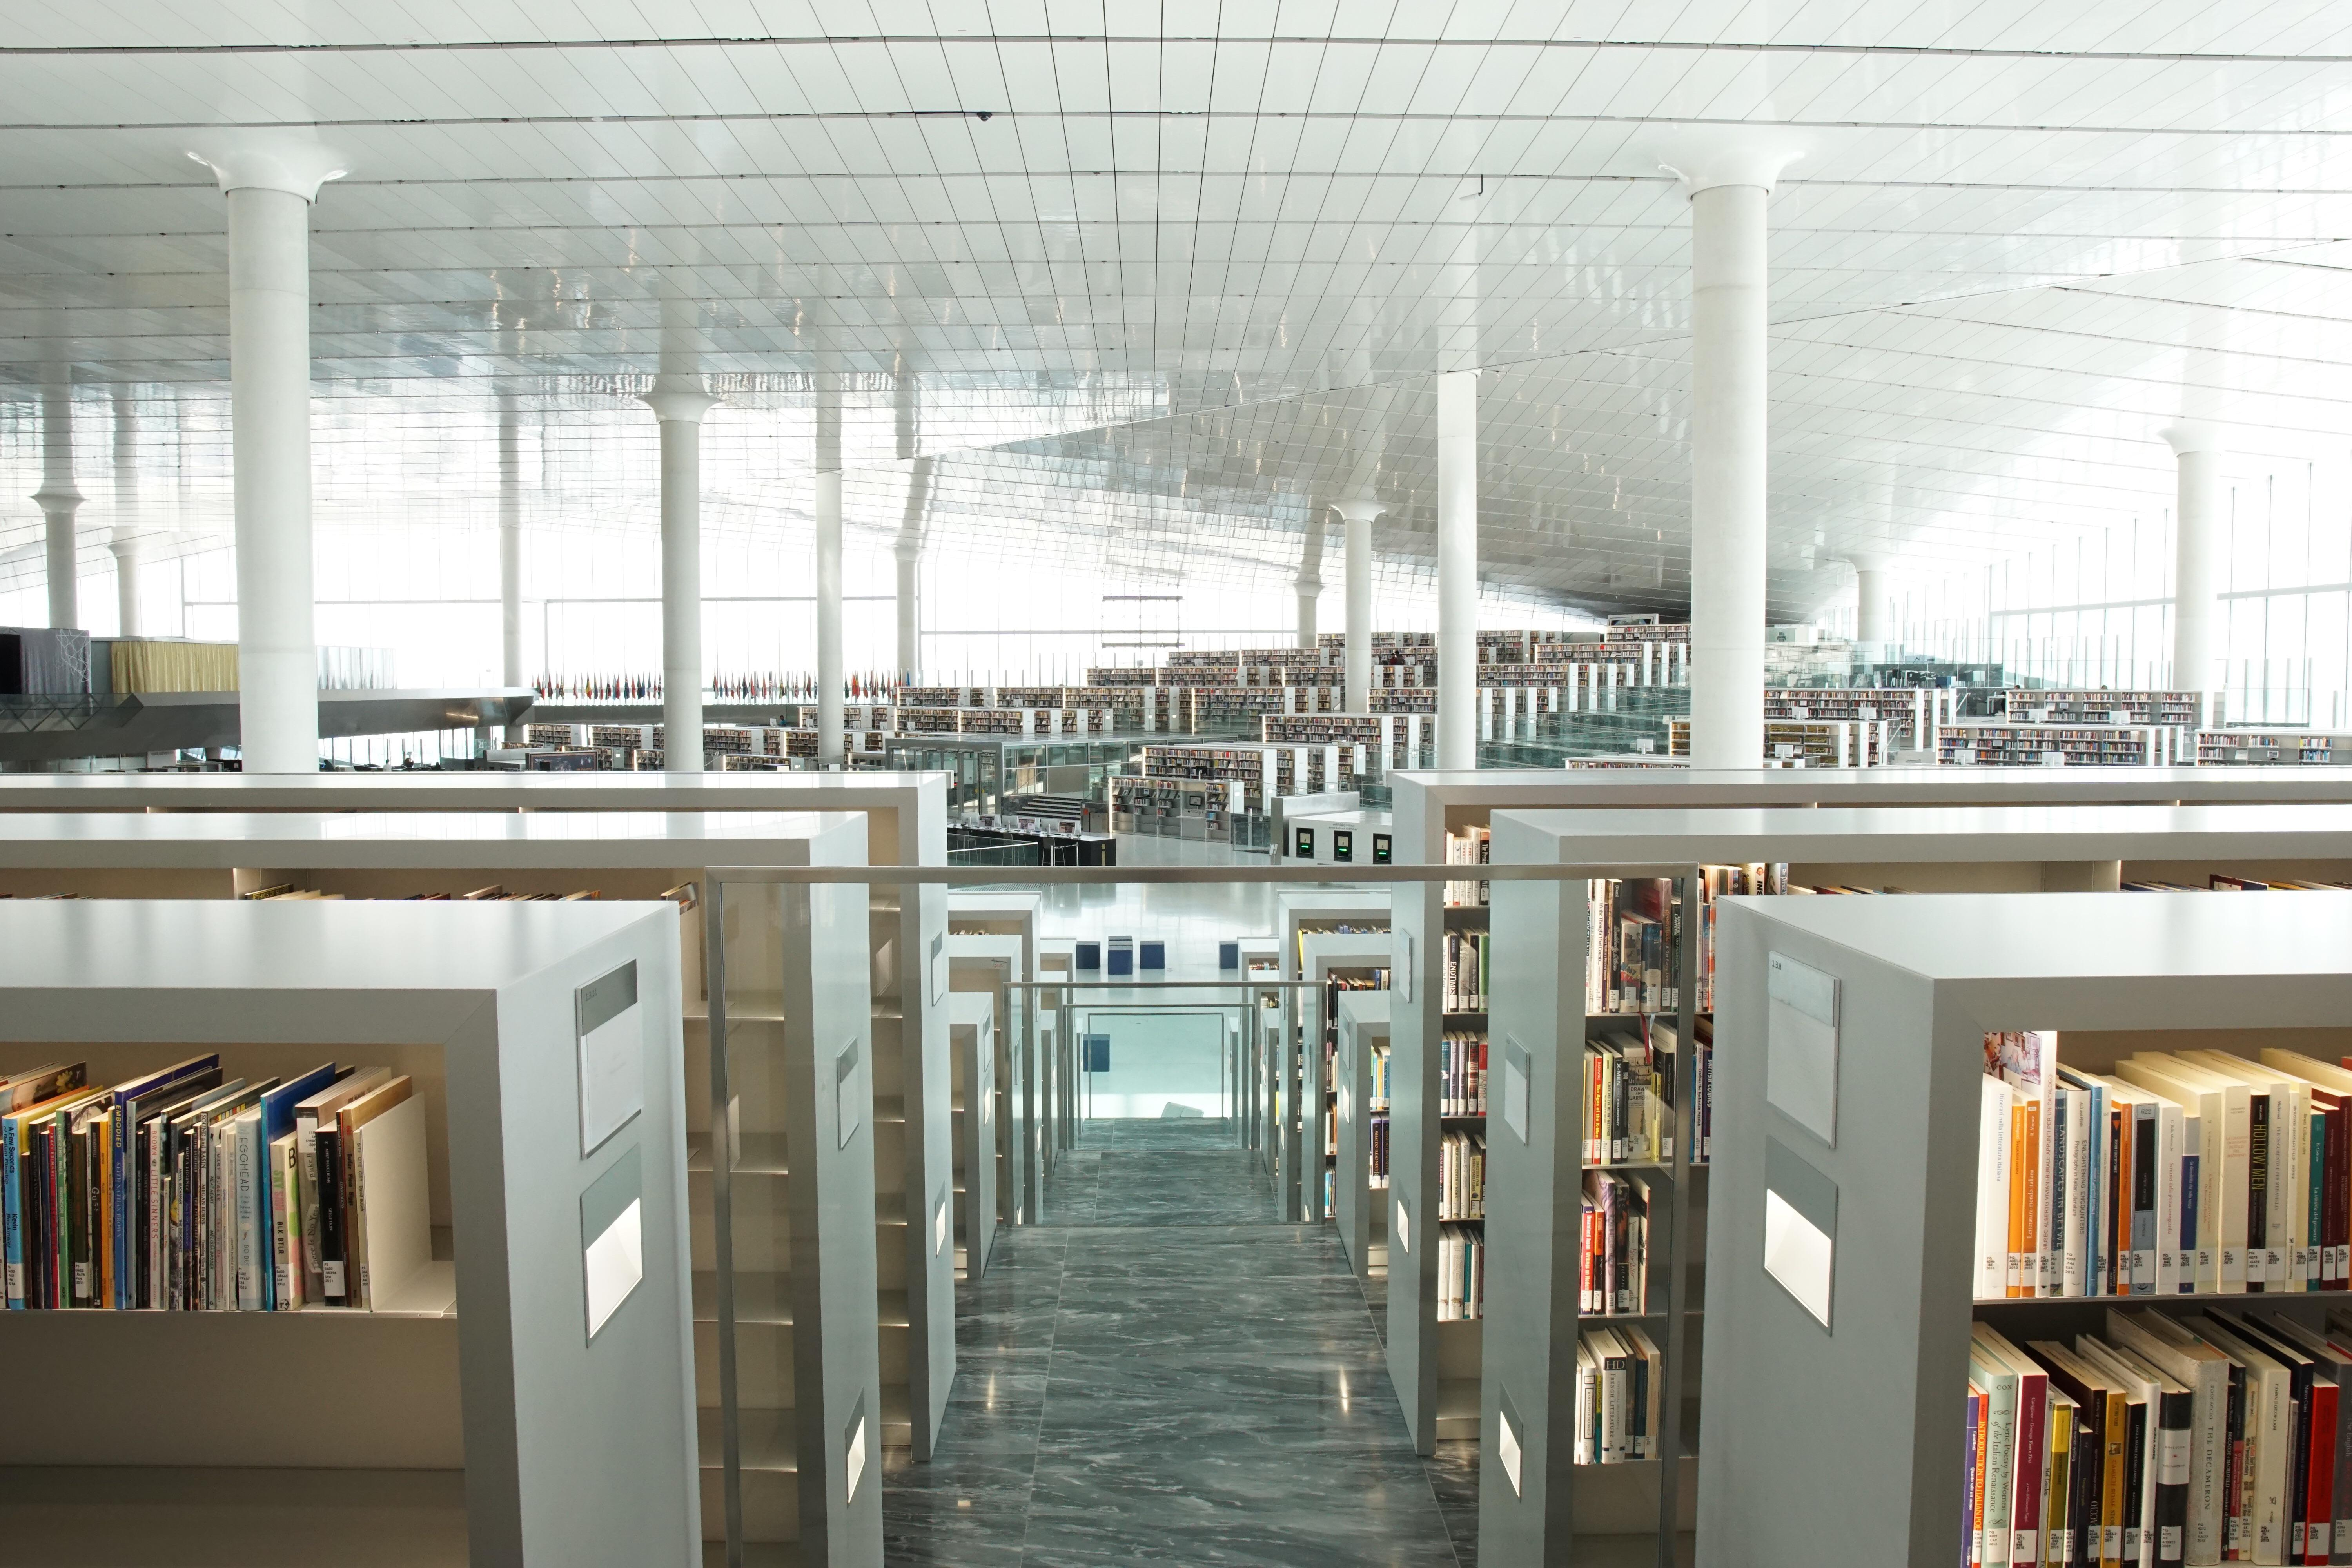 Shelves After Shelves- Qatar National Library   Sony A6000